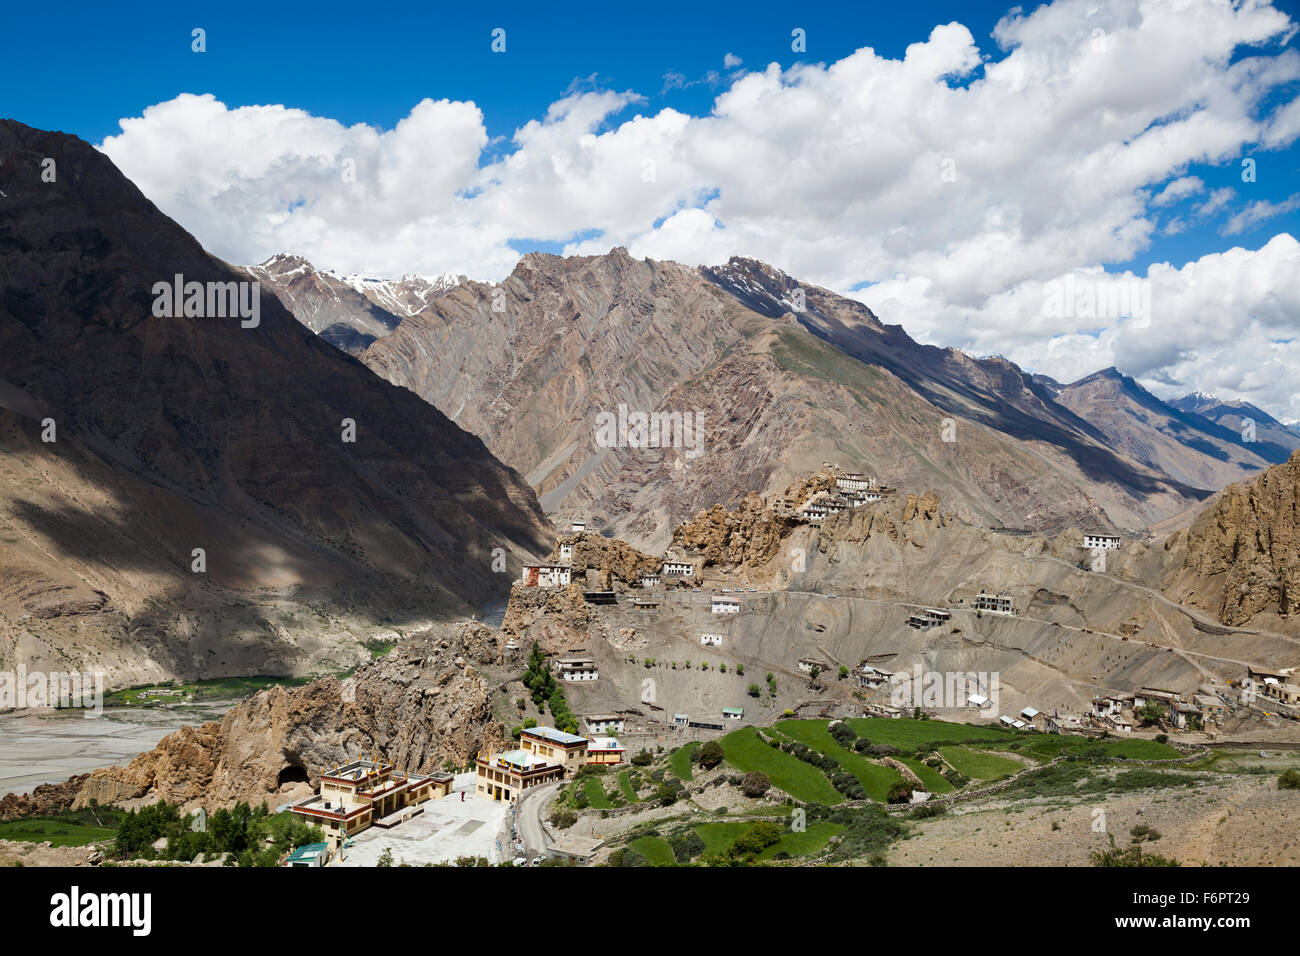 View across the Spiti Valley from Dhankar in the Himalayan region of Himachal Pradesh, India - Stock Image